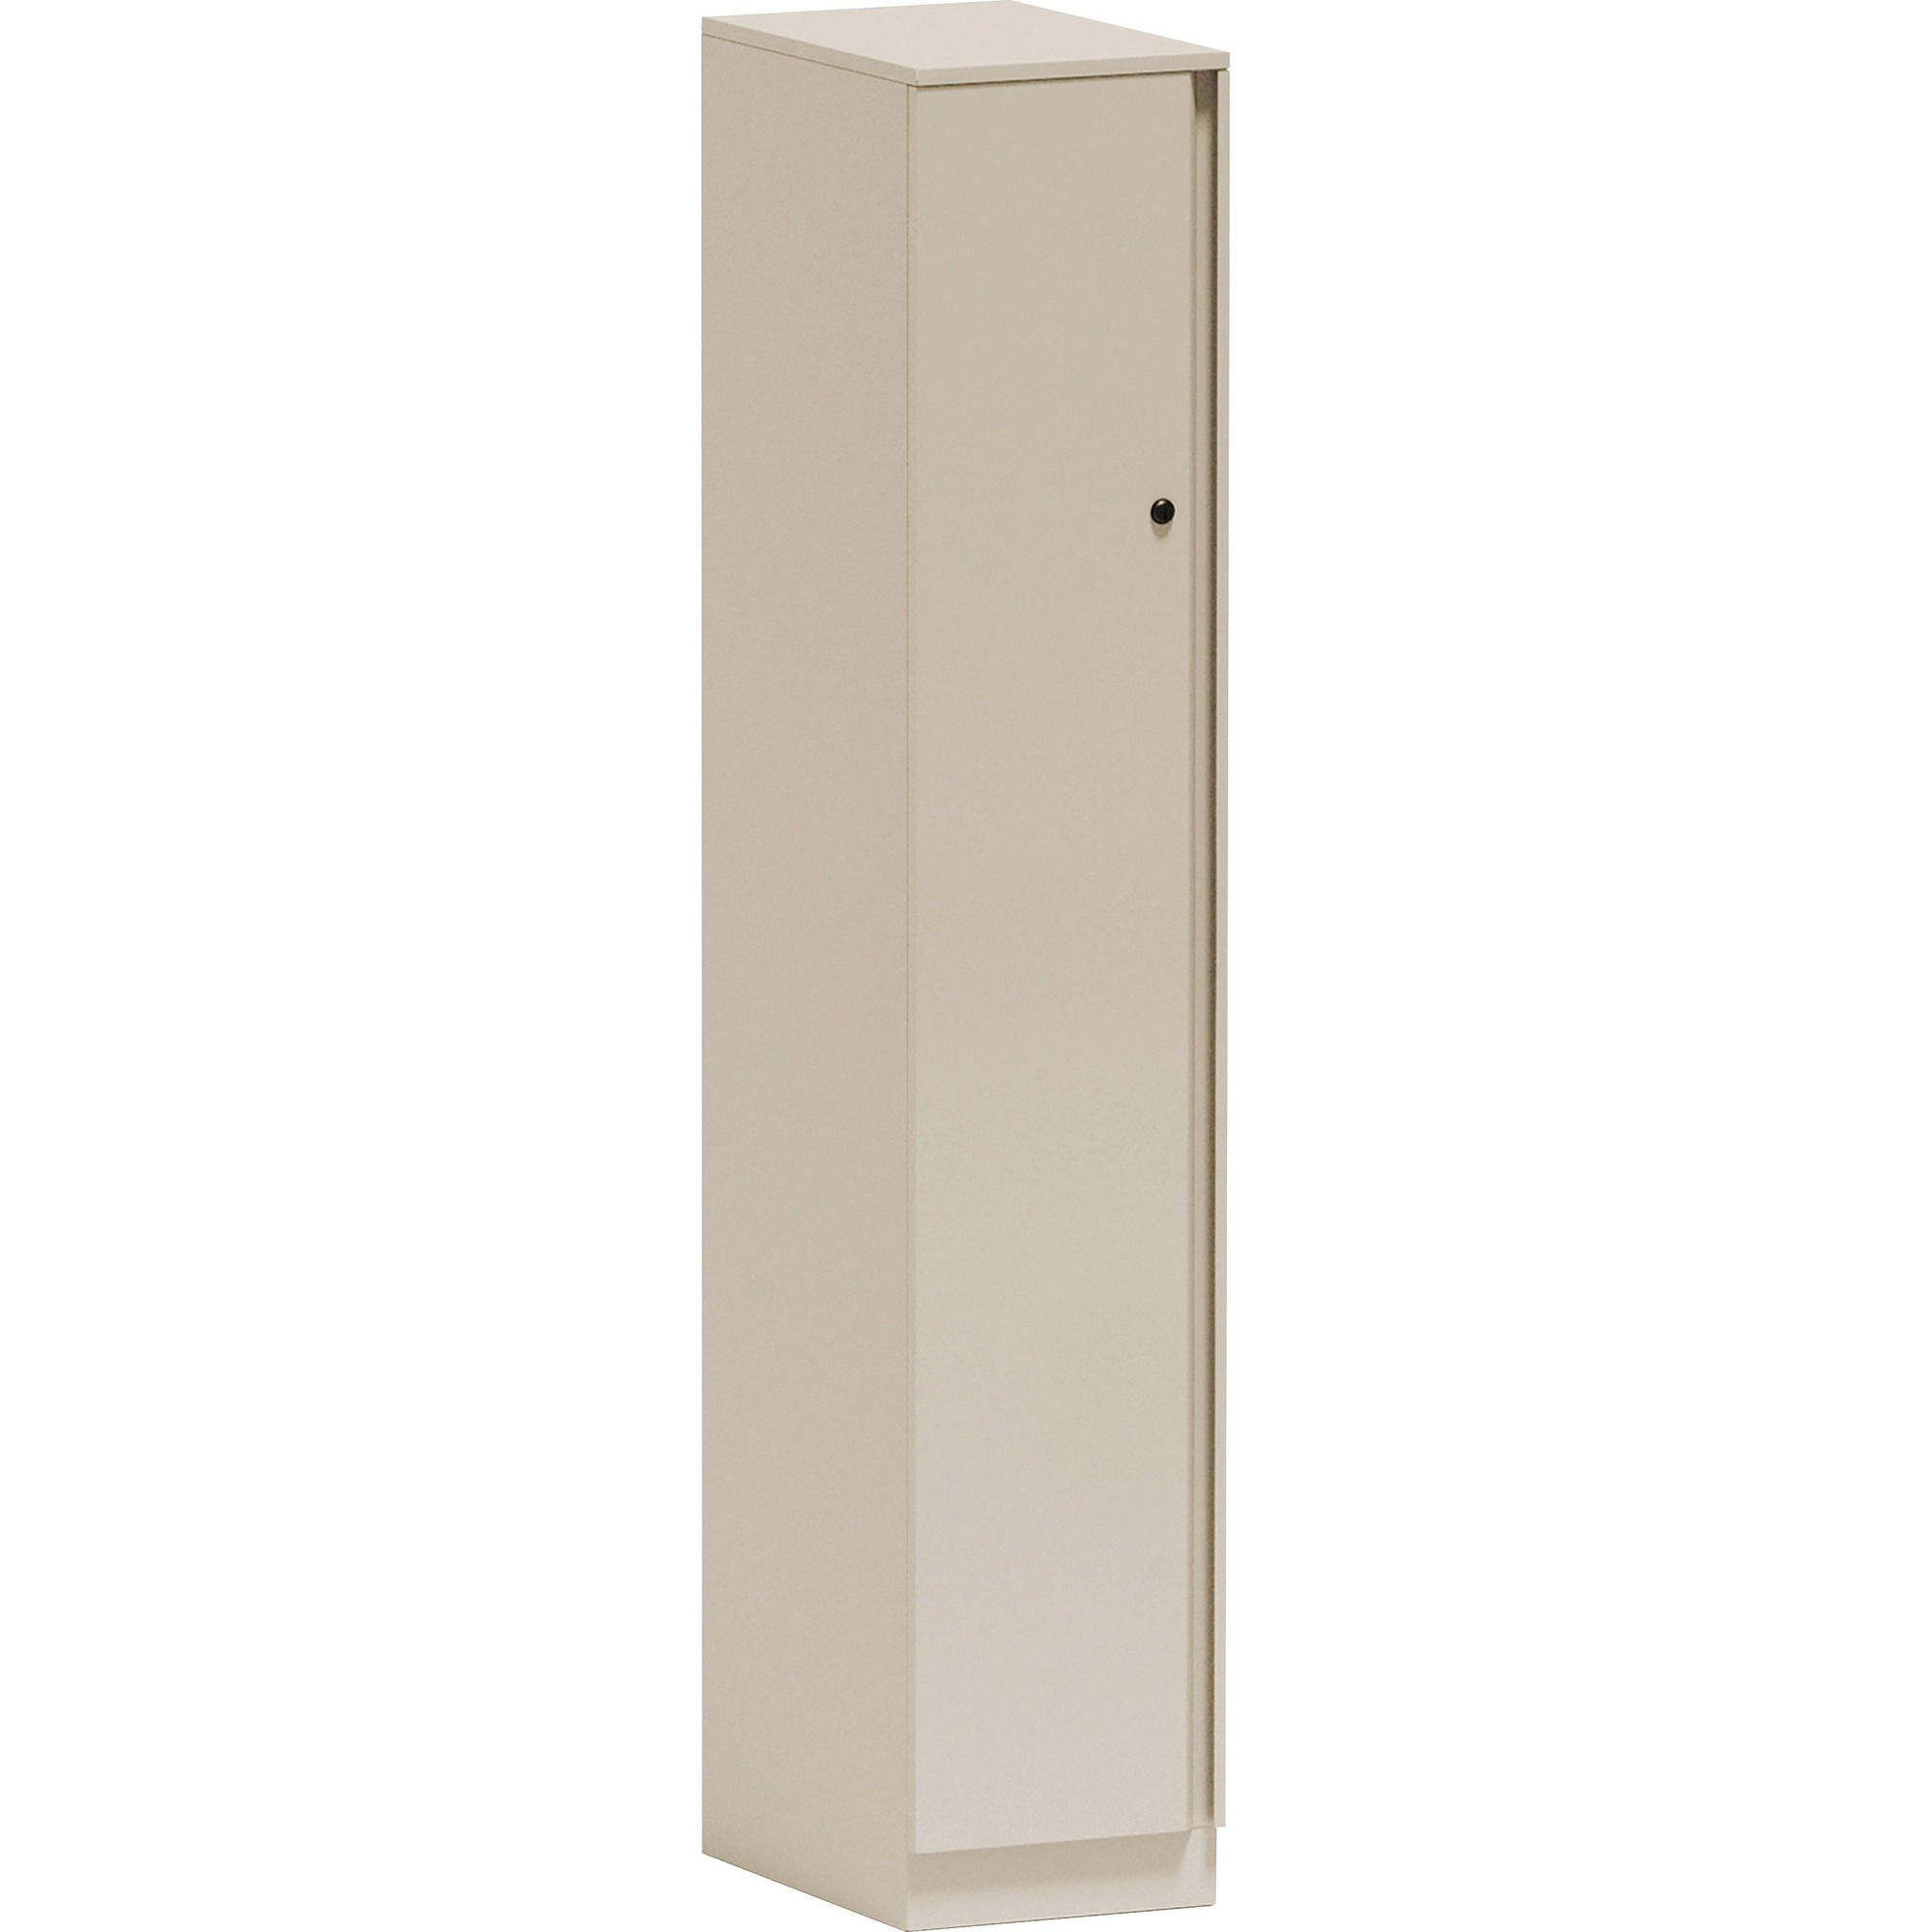 Image for Great Openings Single Locker - Wall - for Jacket, Shoes - Overall Size 65.9 x 12 - Beige - Metal